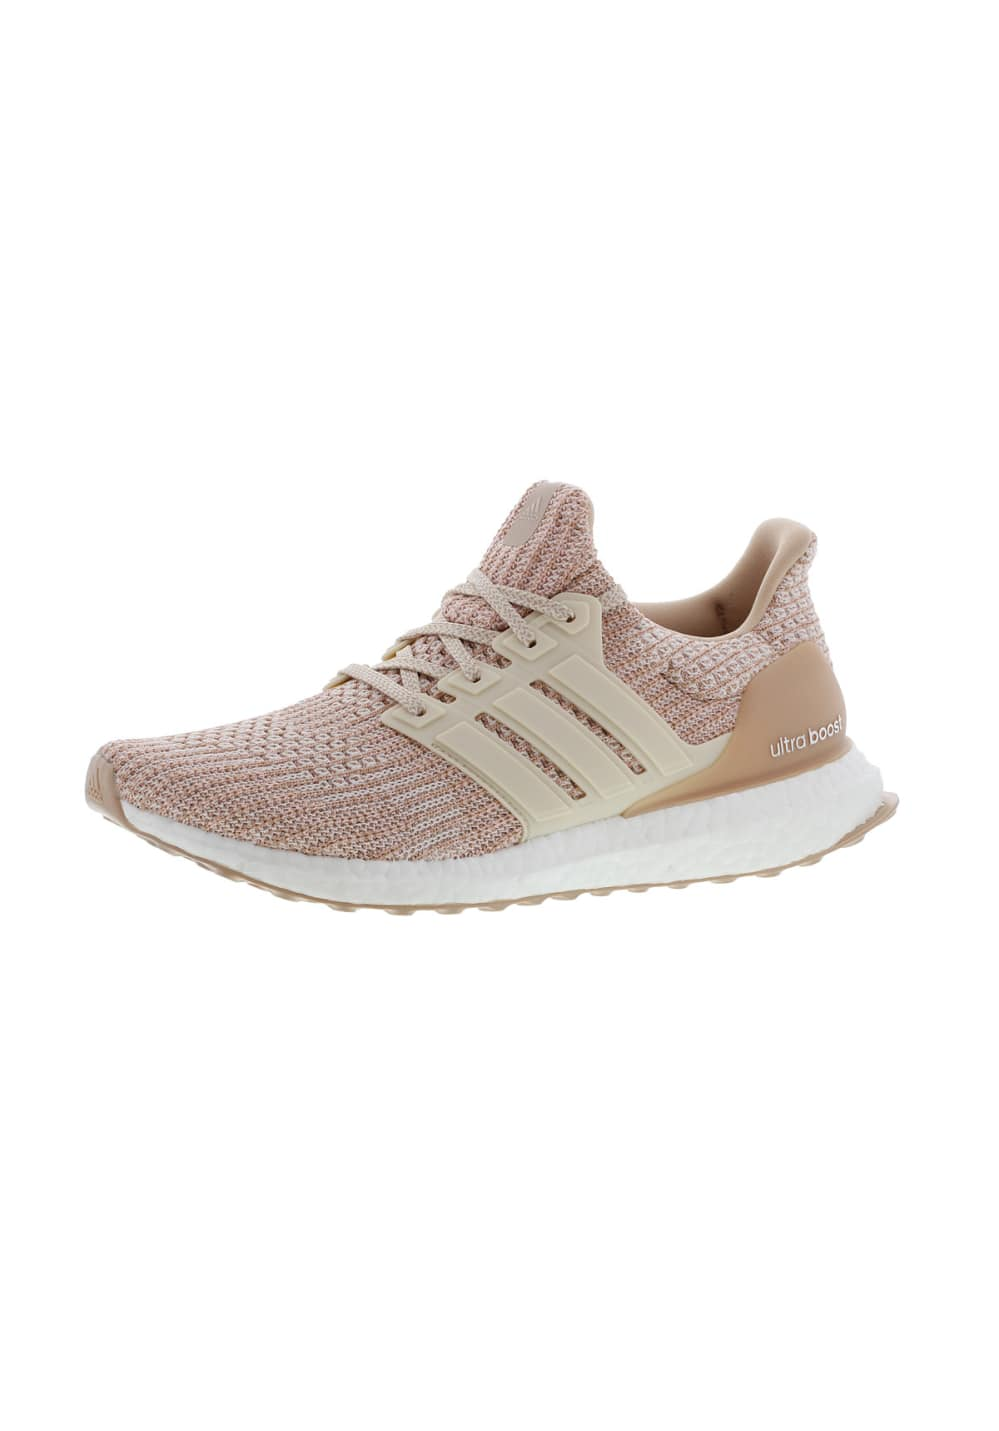 grand choix de 10abe dd707 adidas Ultra Boost - Running shoes for Women - Beige